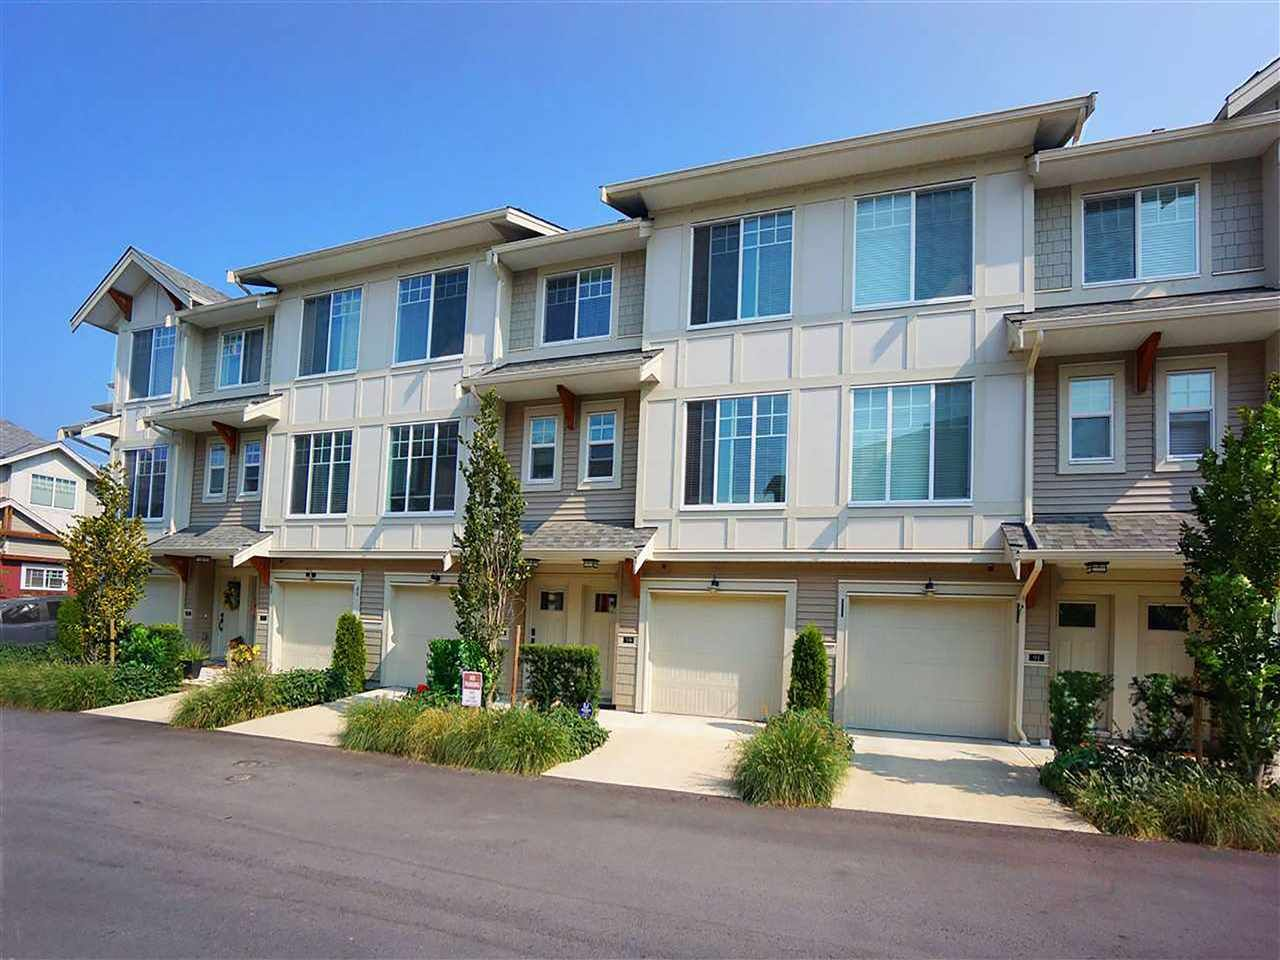 Main Photo: 90 20498 82 AVENUE in Langley: Willoughby Heights Townhouse for sale : MLS®# R2527686